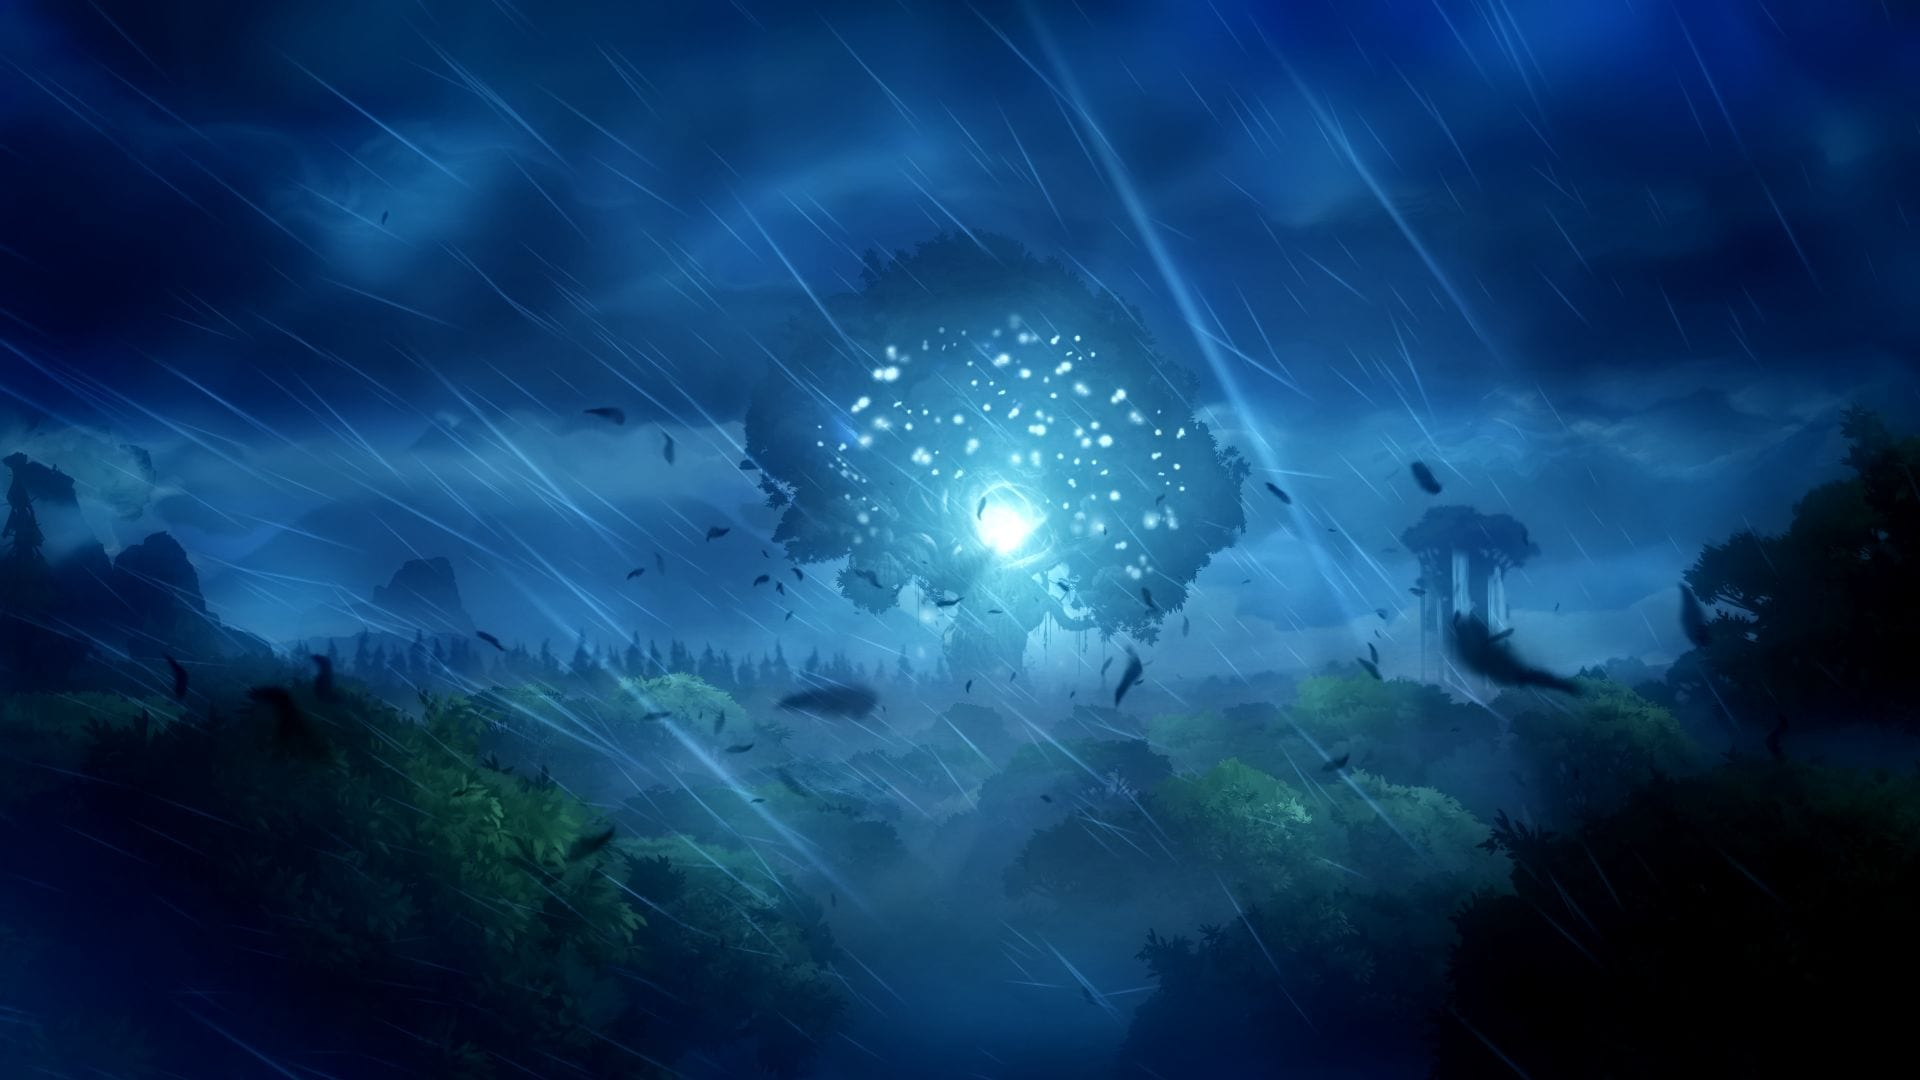 Ori and the Blind Forest Tree Darkness